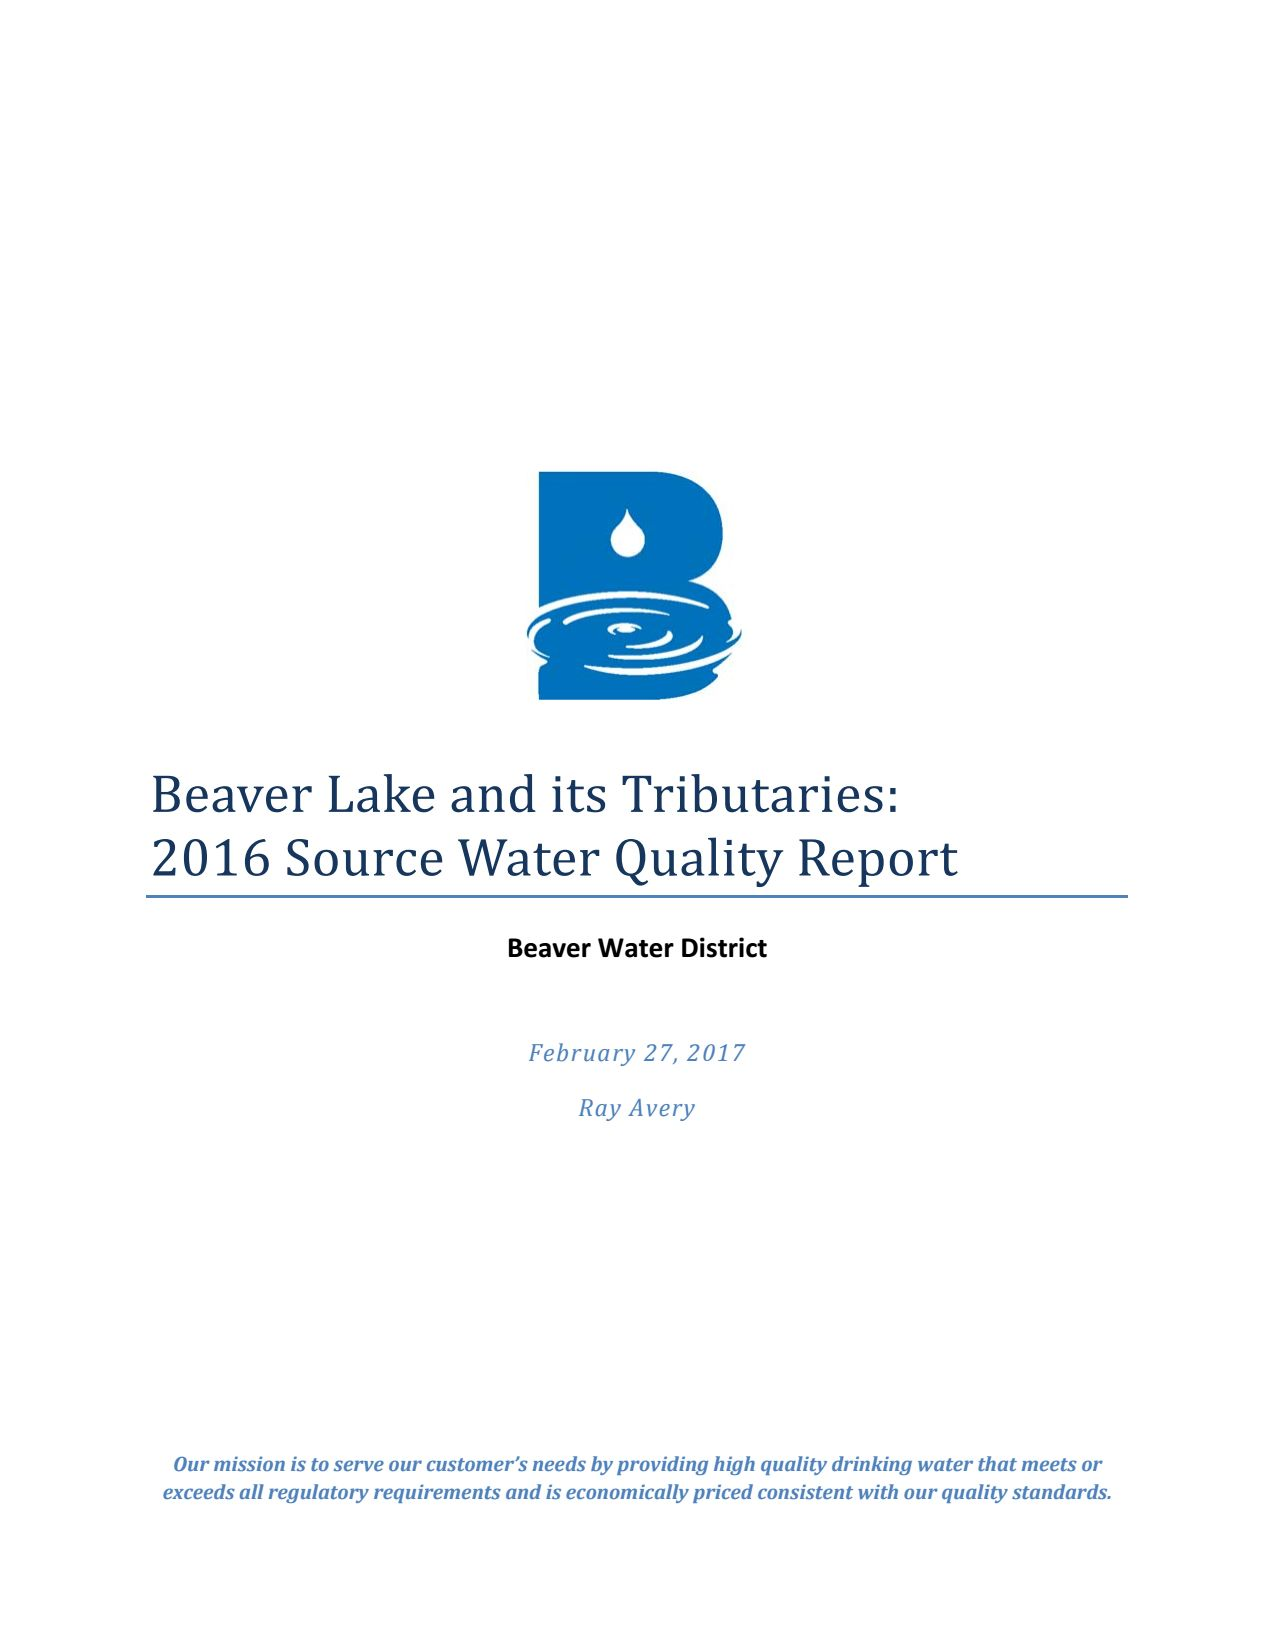 2016 Beaver Lake Water Quality Report